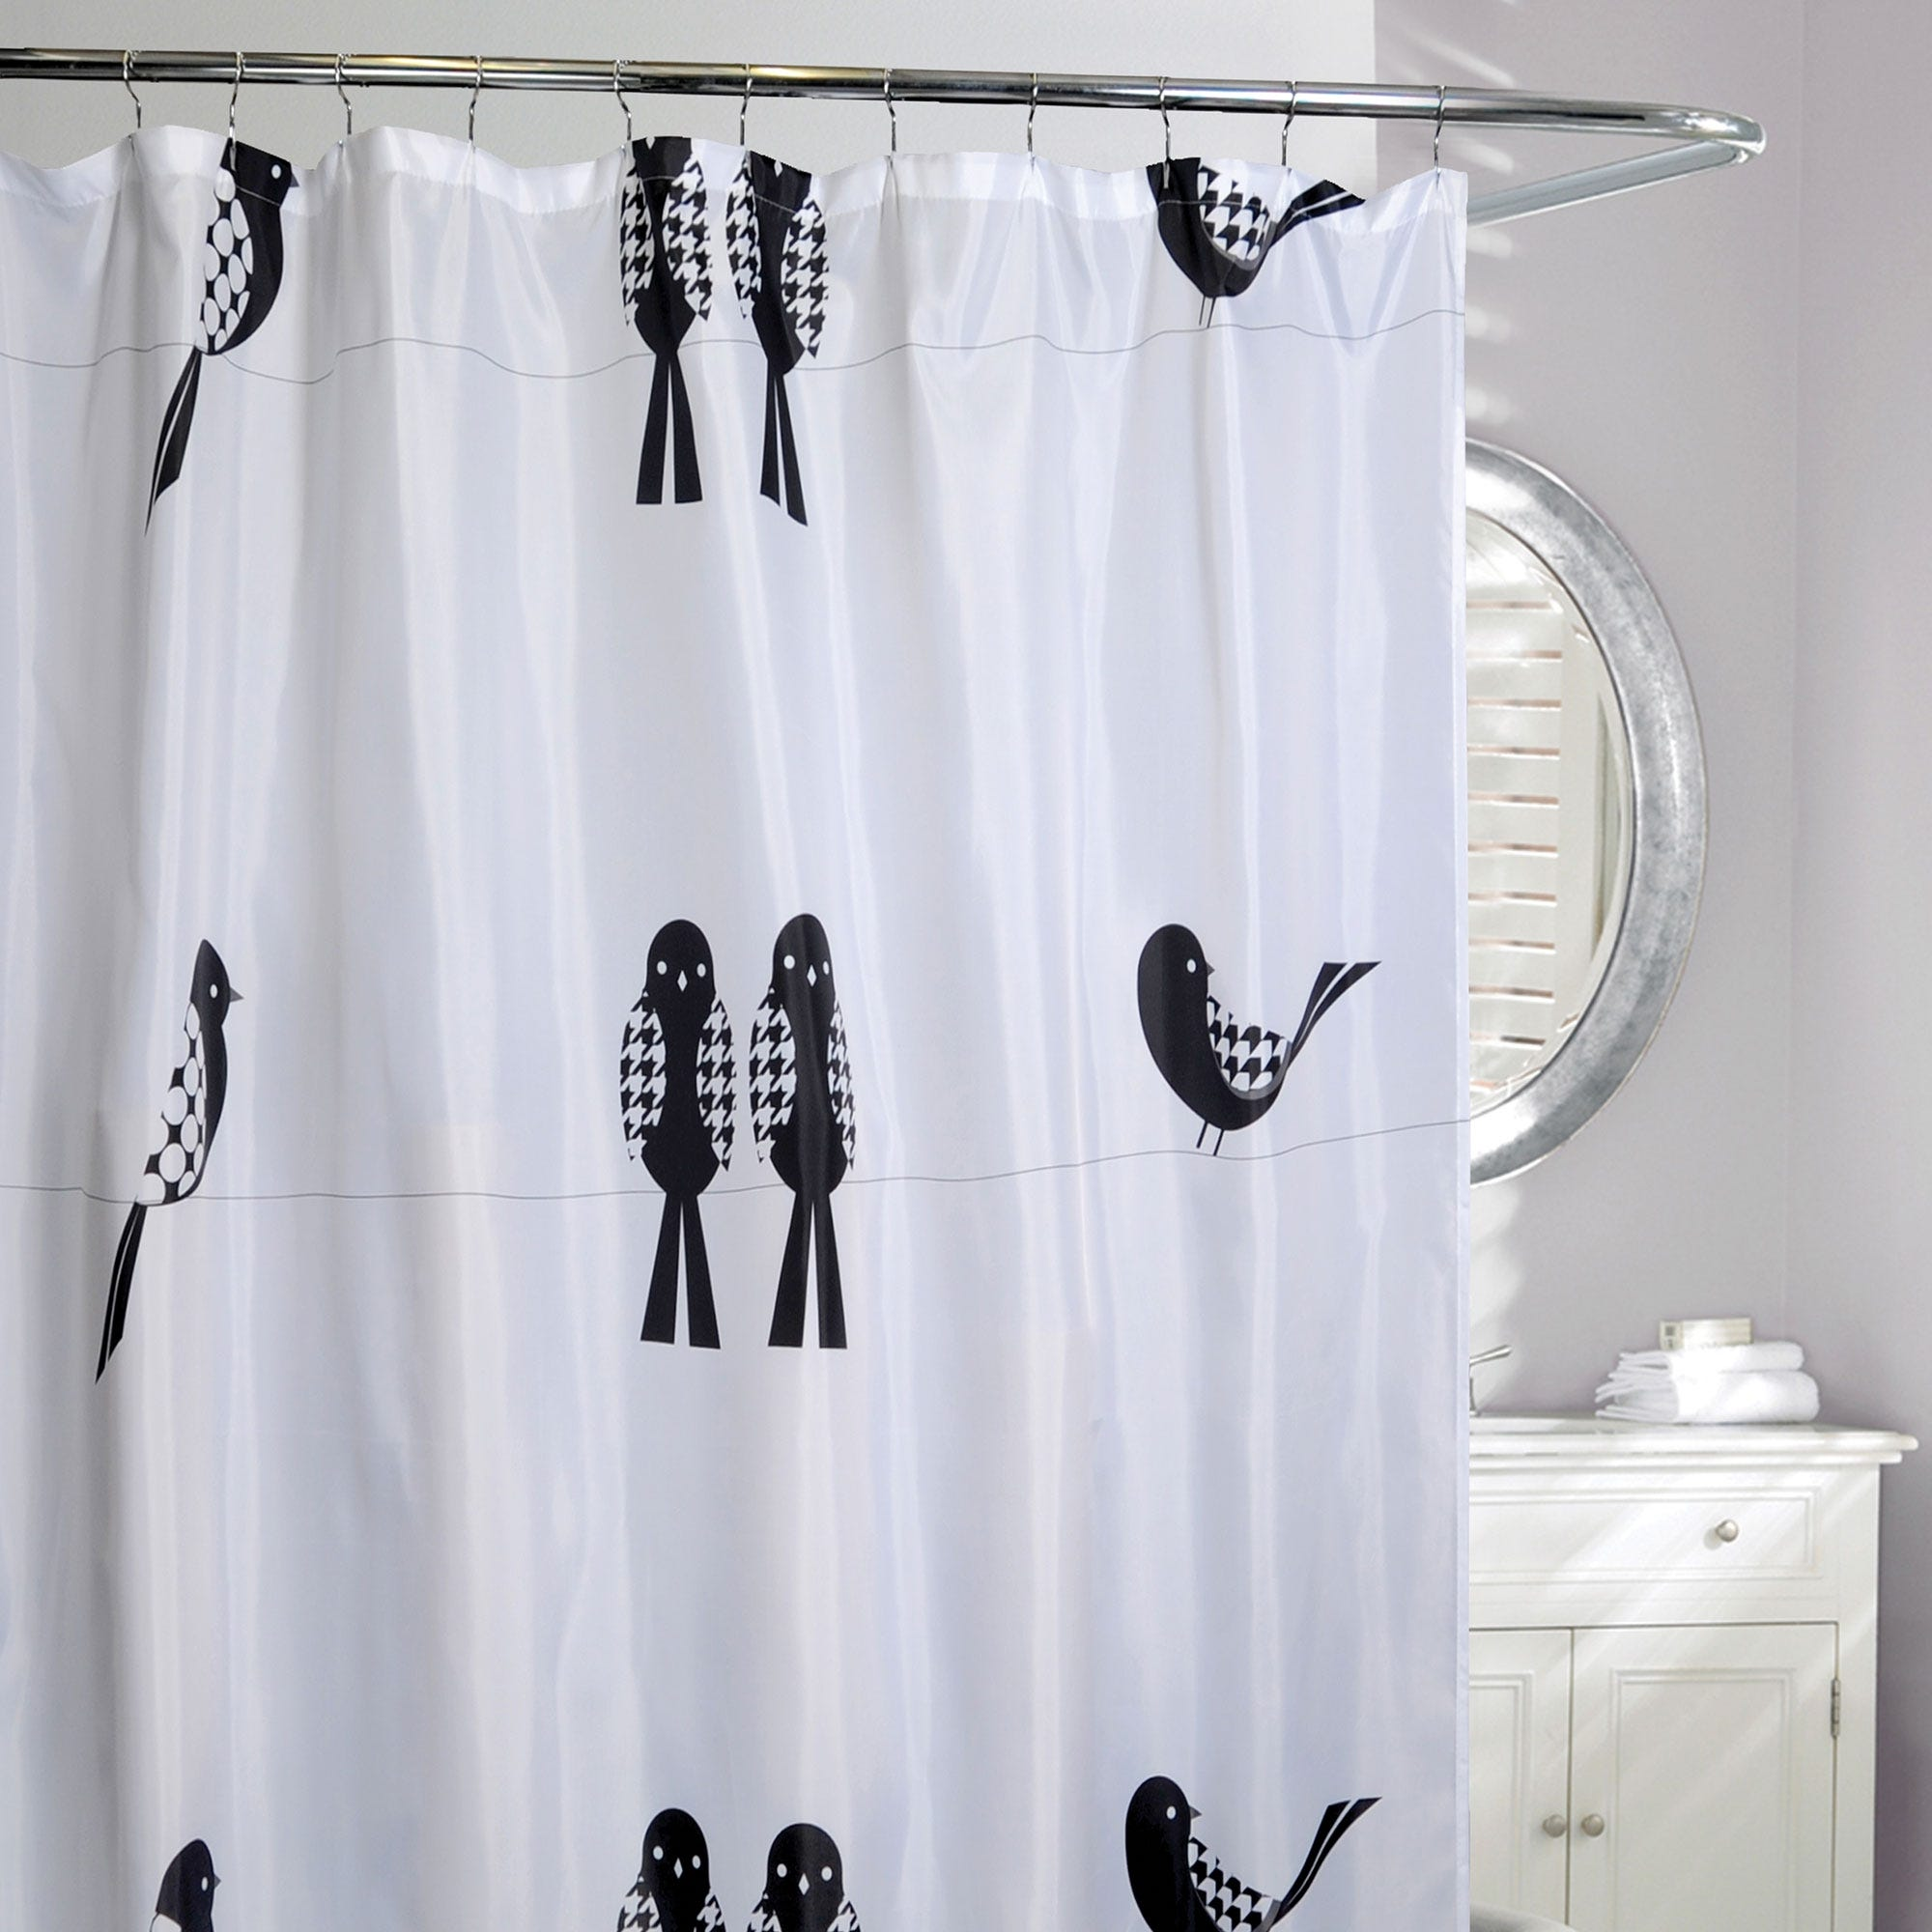 Products In Sale Shower Curtains Bath On Linen Chest